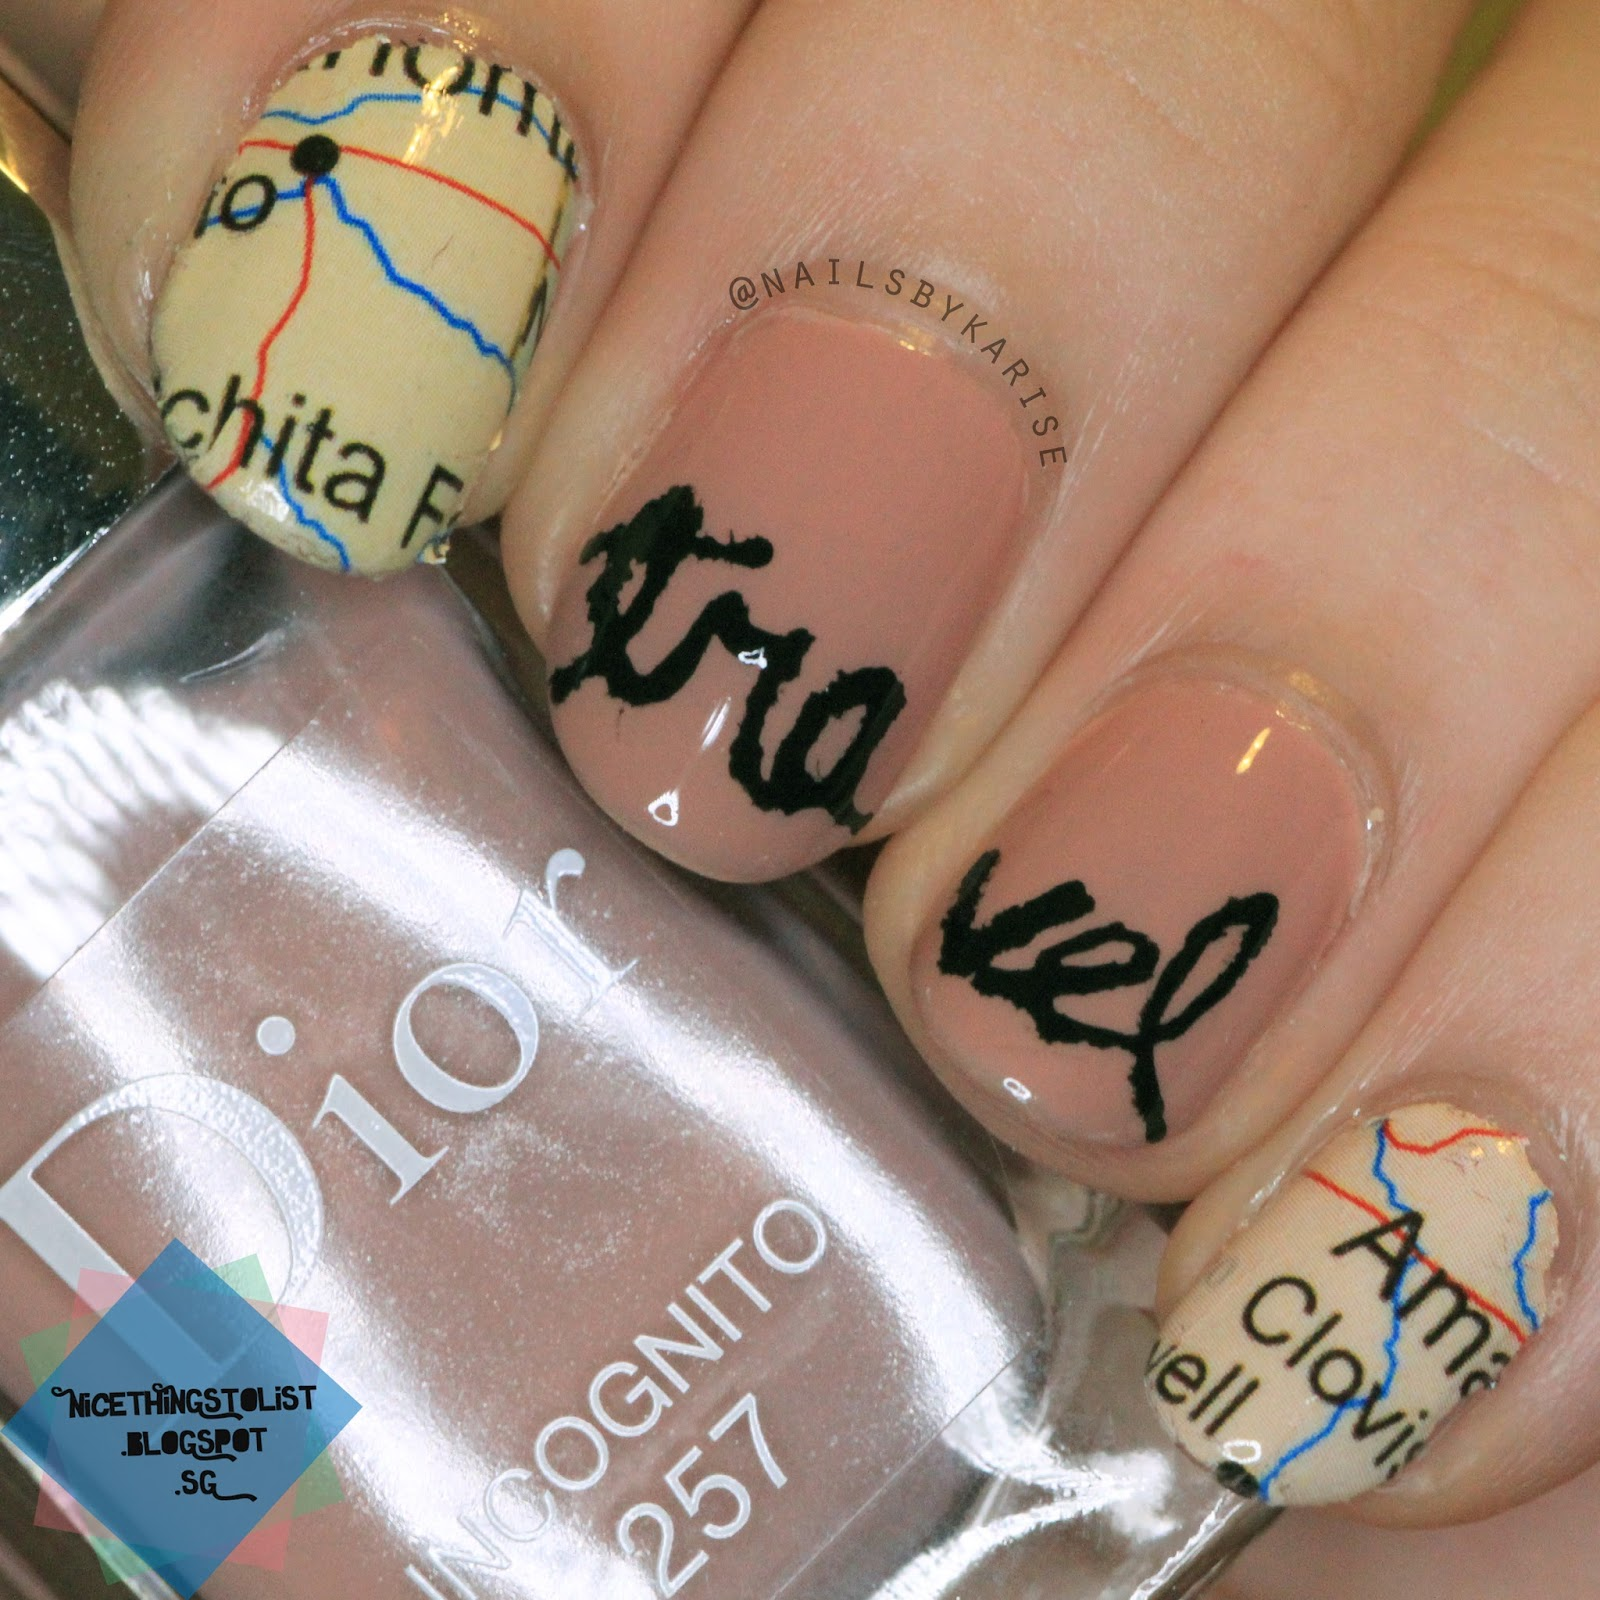 Travel nail art with road map decal nice things to list travel nail art with road map decal prinsesfo Images